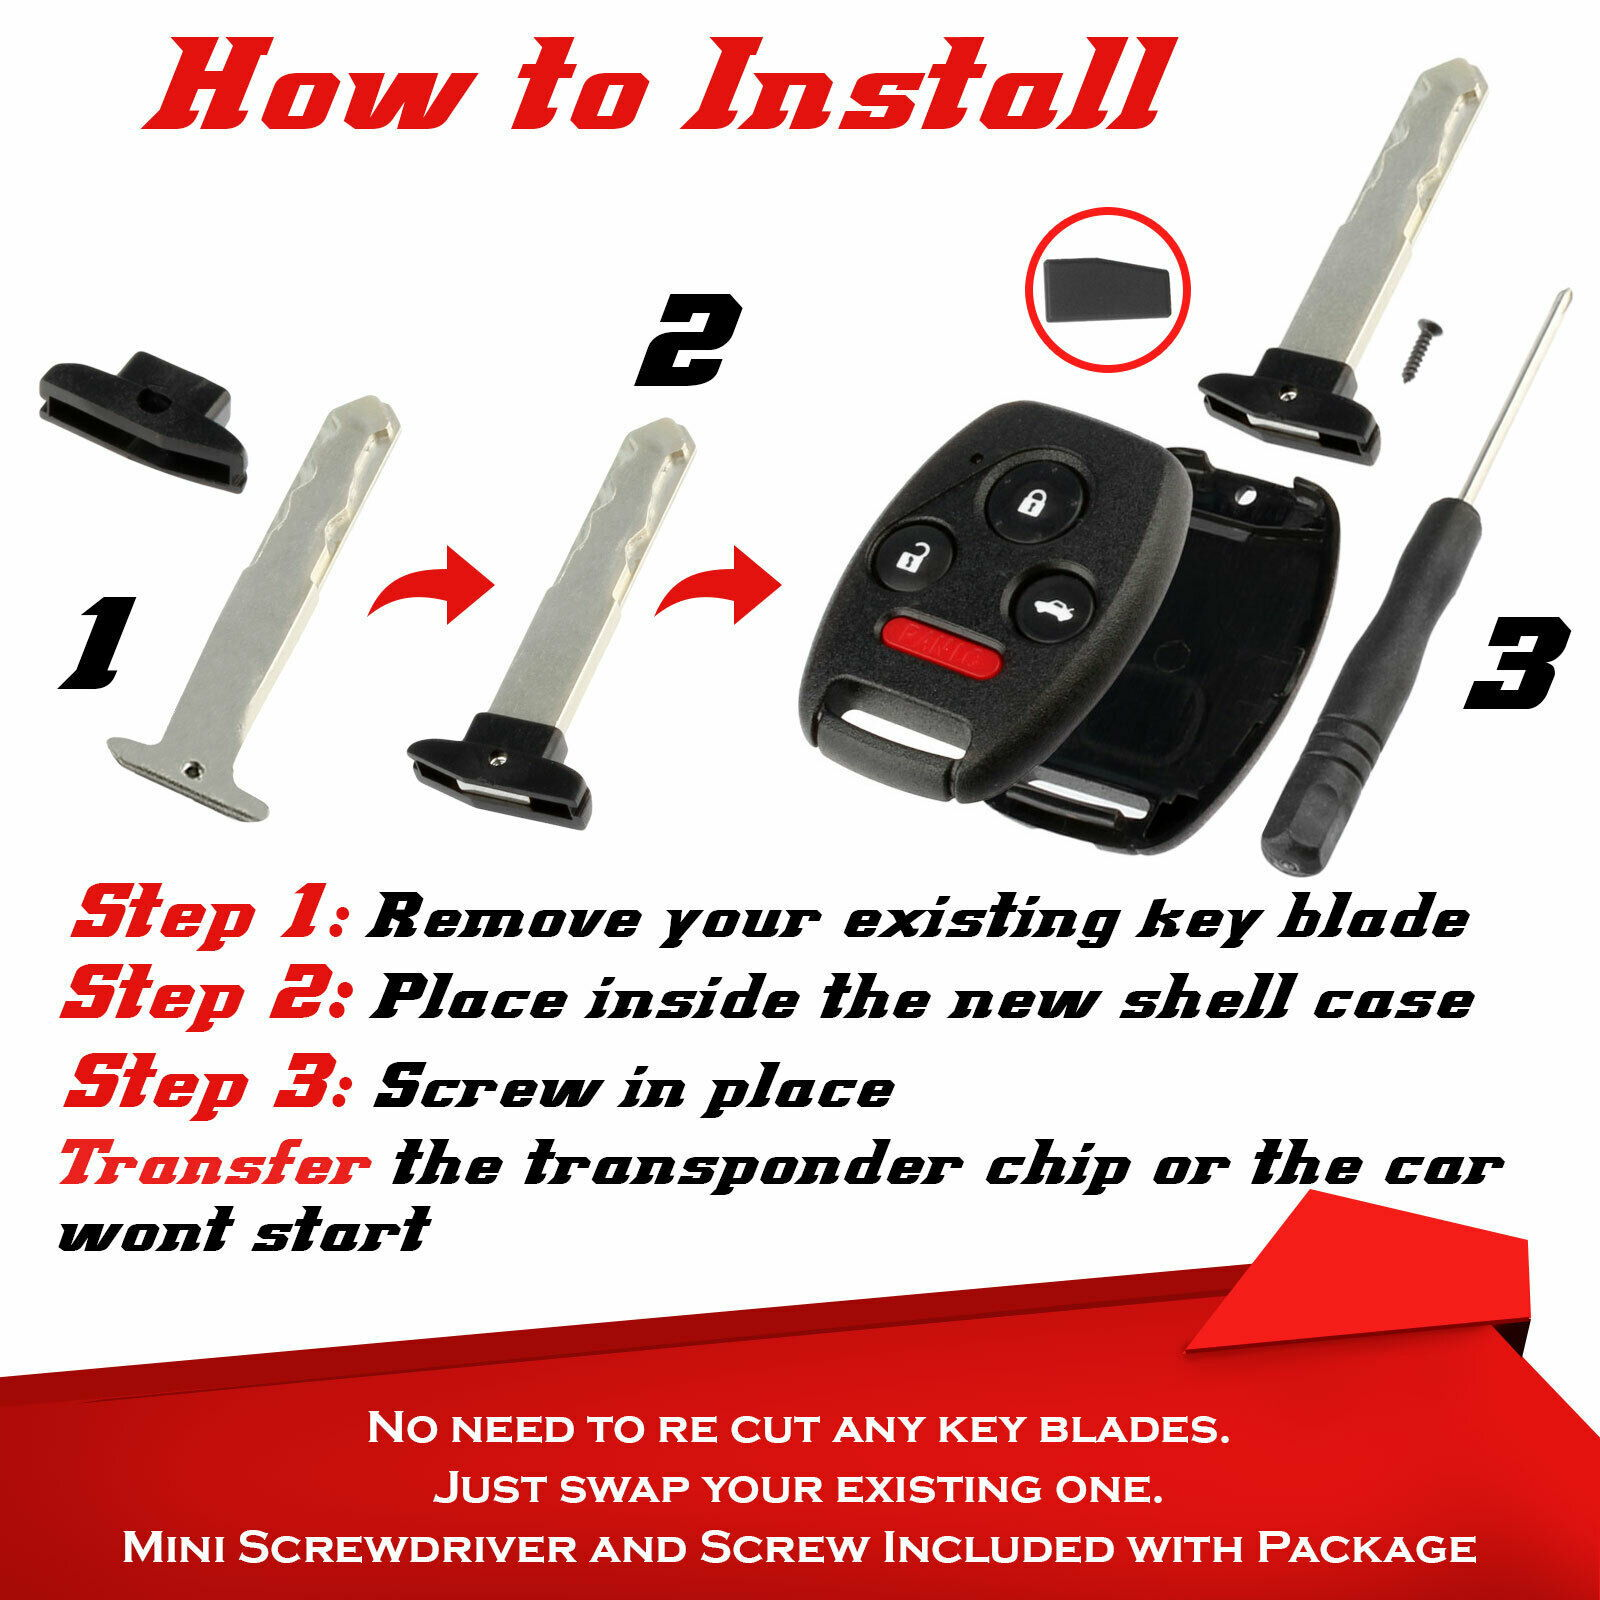 SUCCESS! Honda Accord Style Key Fob With Immobilizer